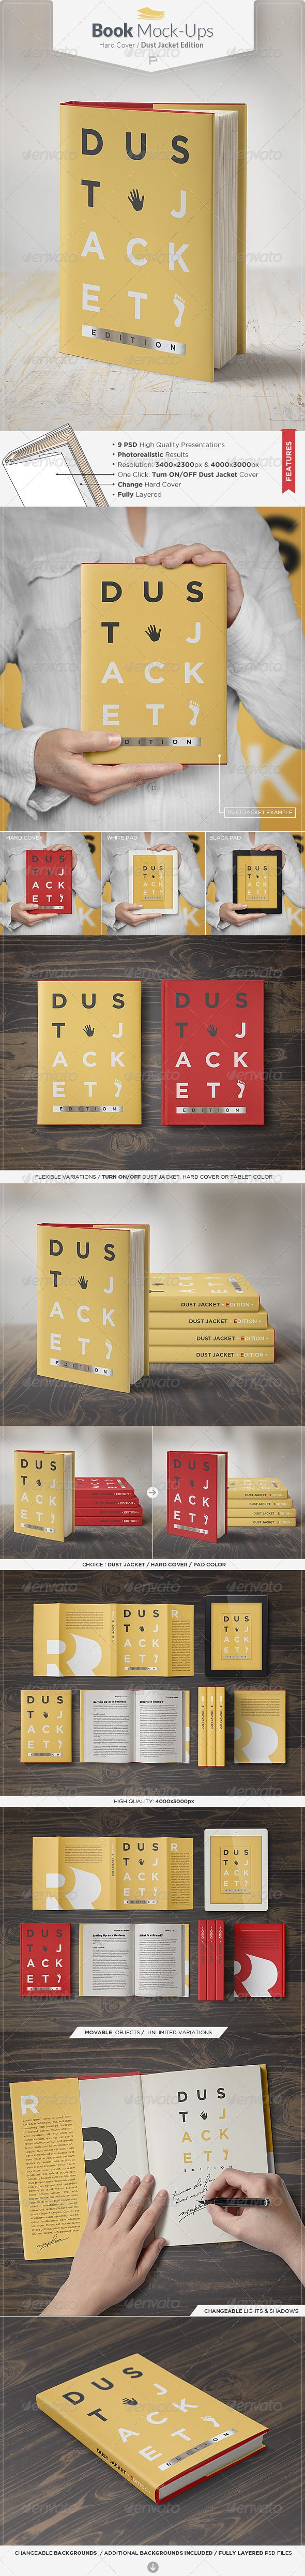 Book Mock-Up / Dust Jacket Edition - Books Print